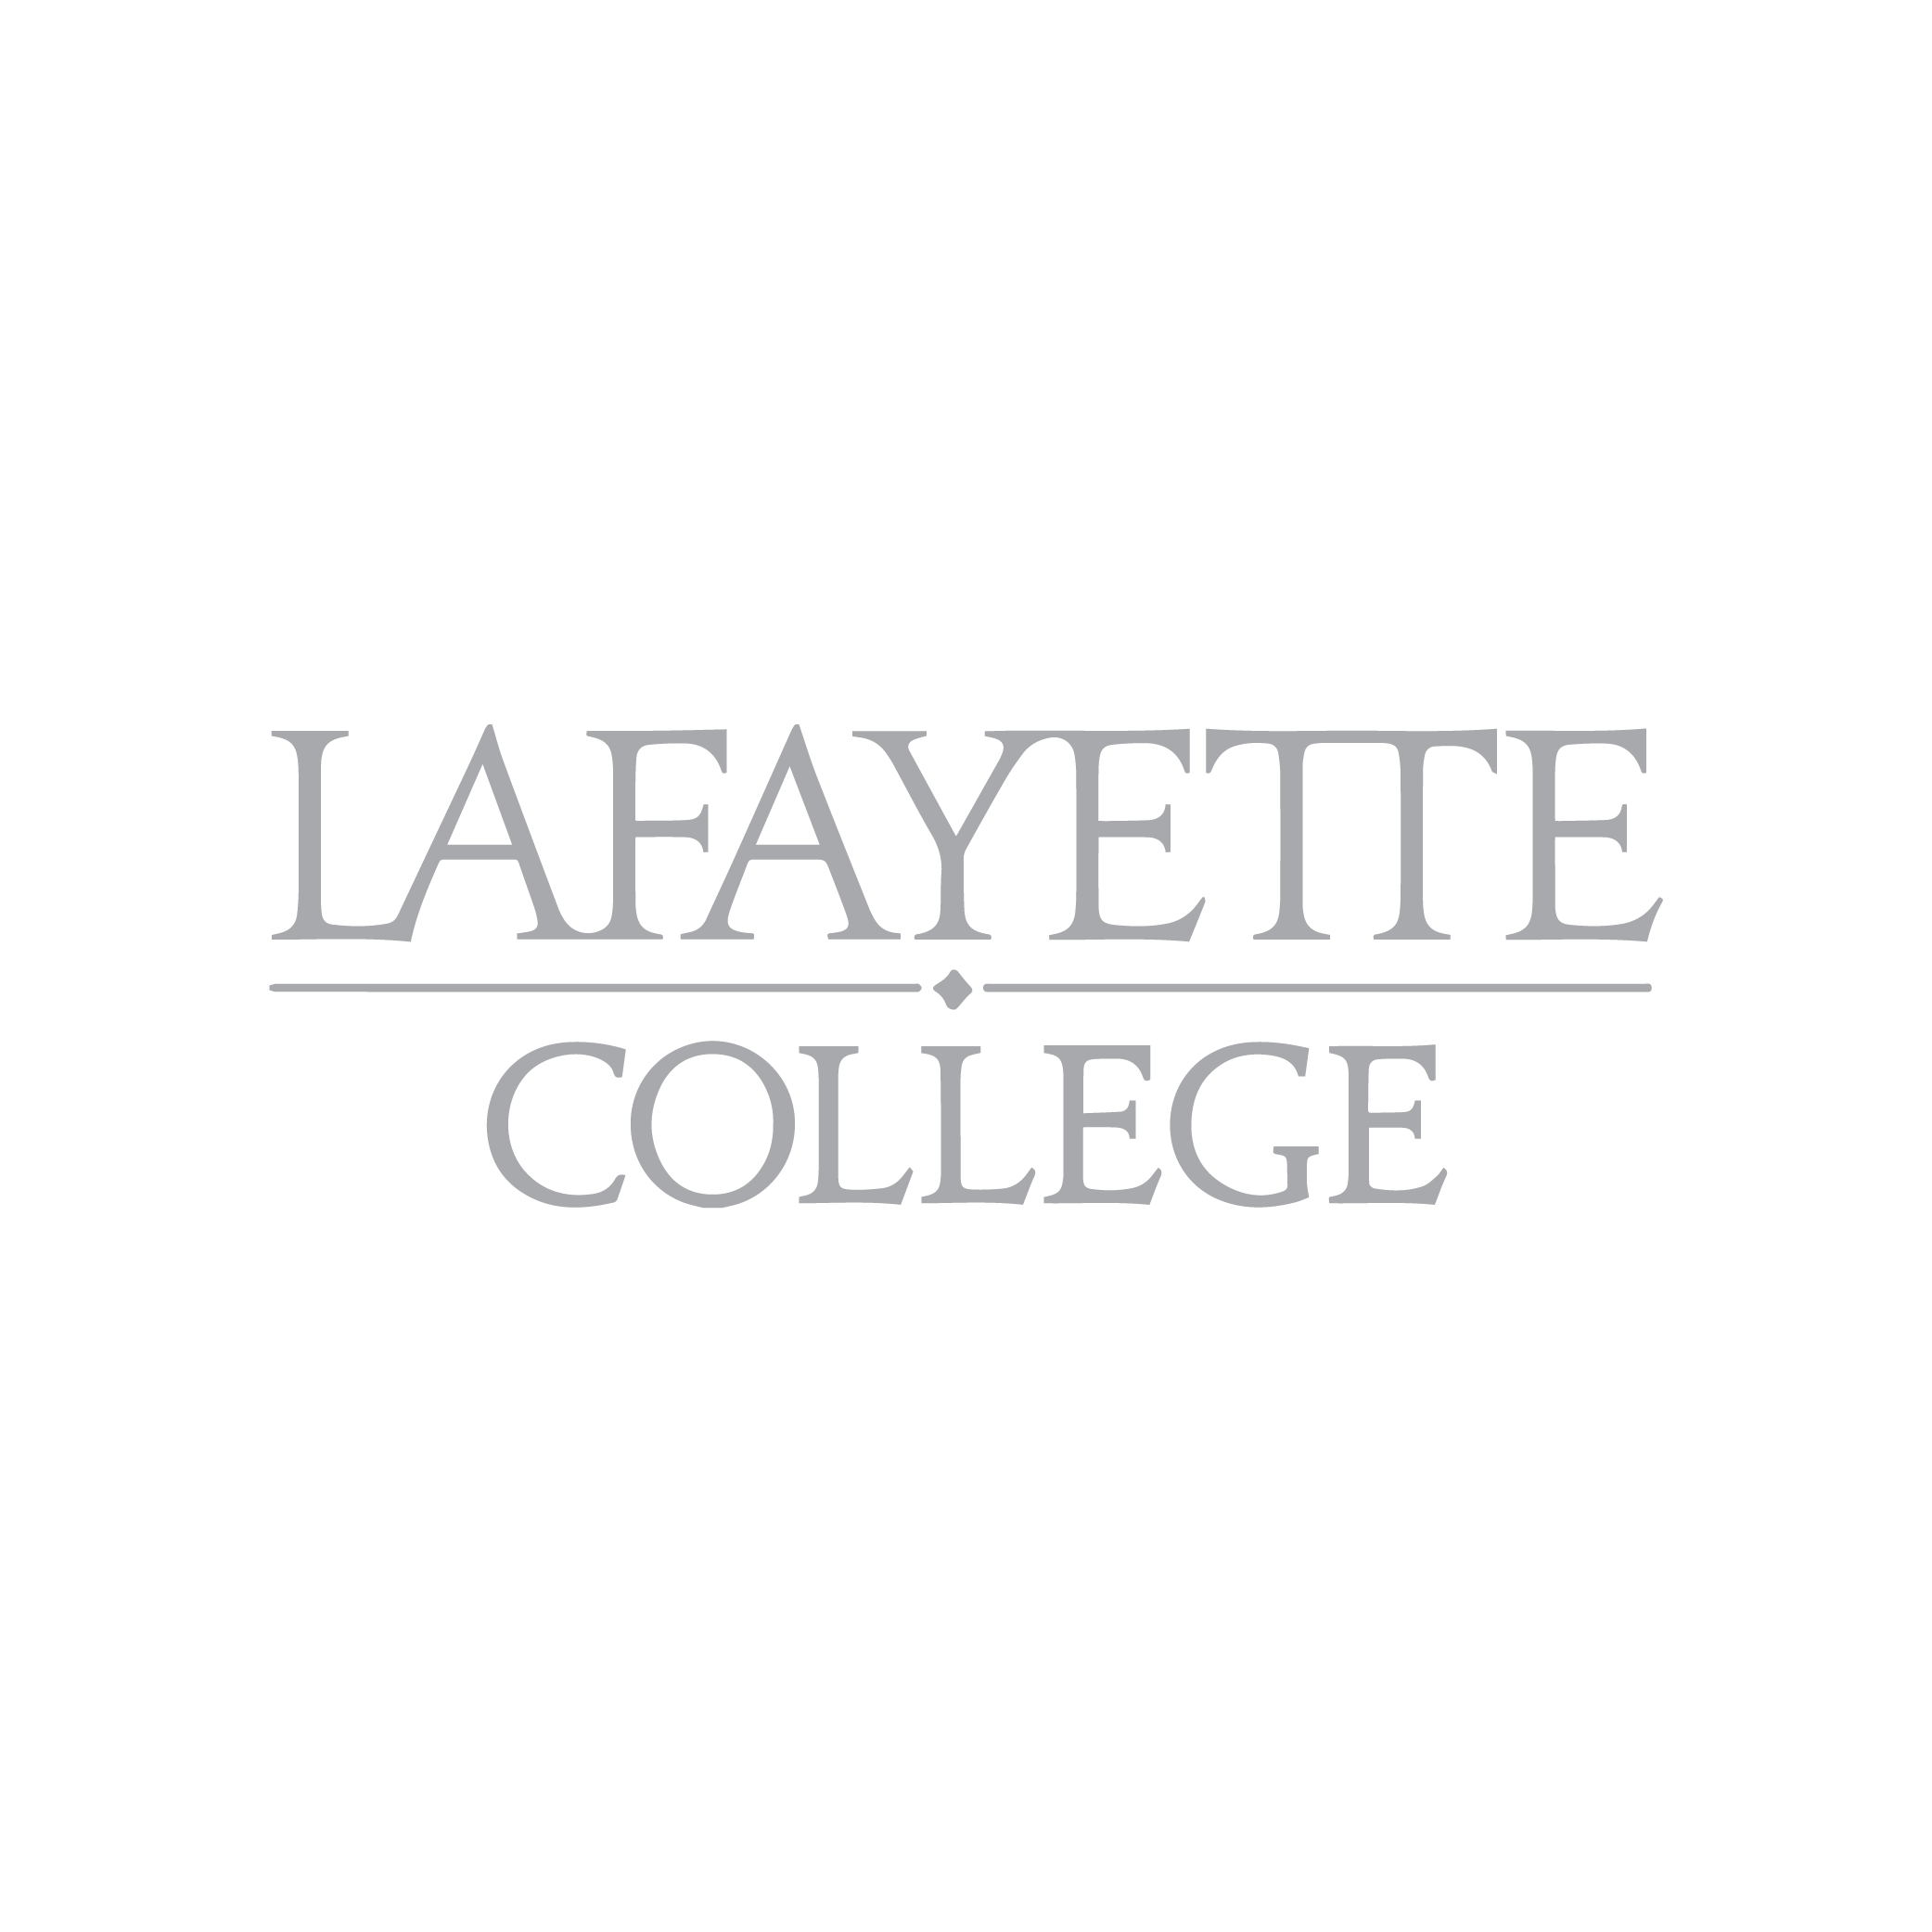 Lafayette College (Skillman Library), Easton, PA.